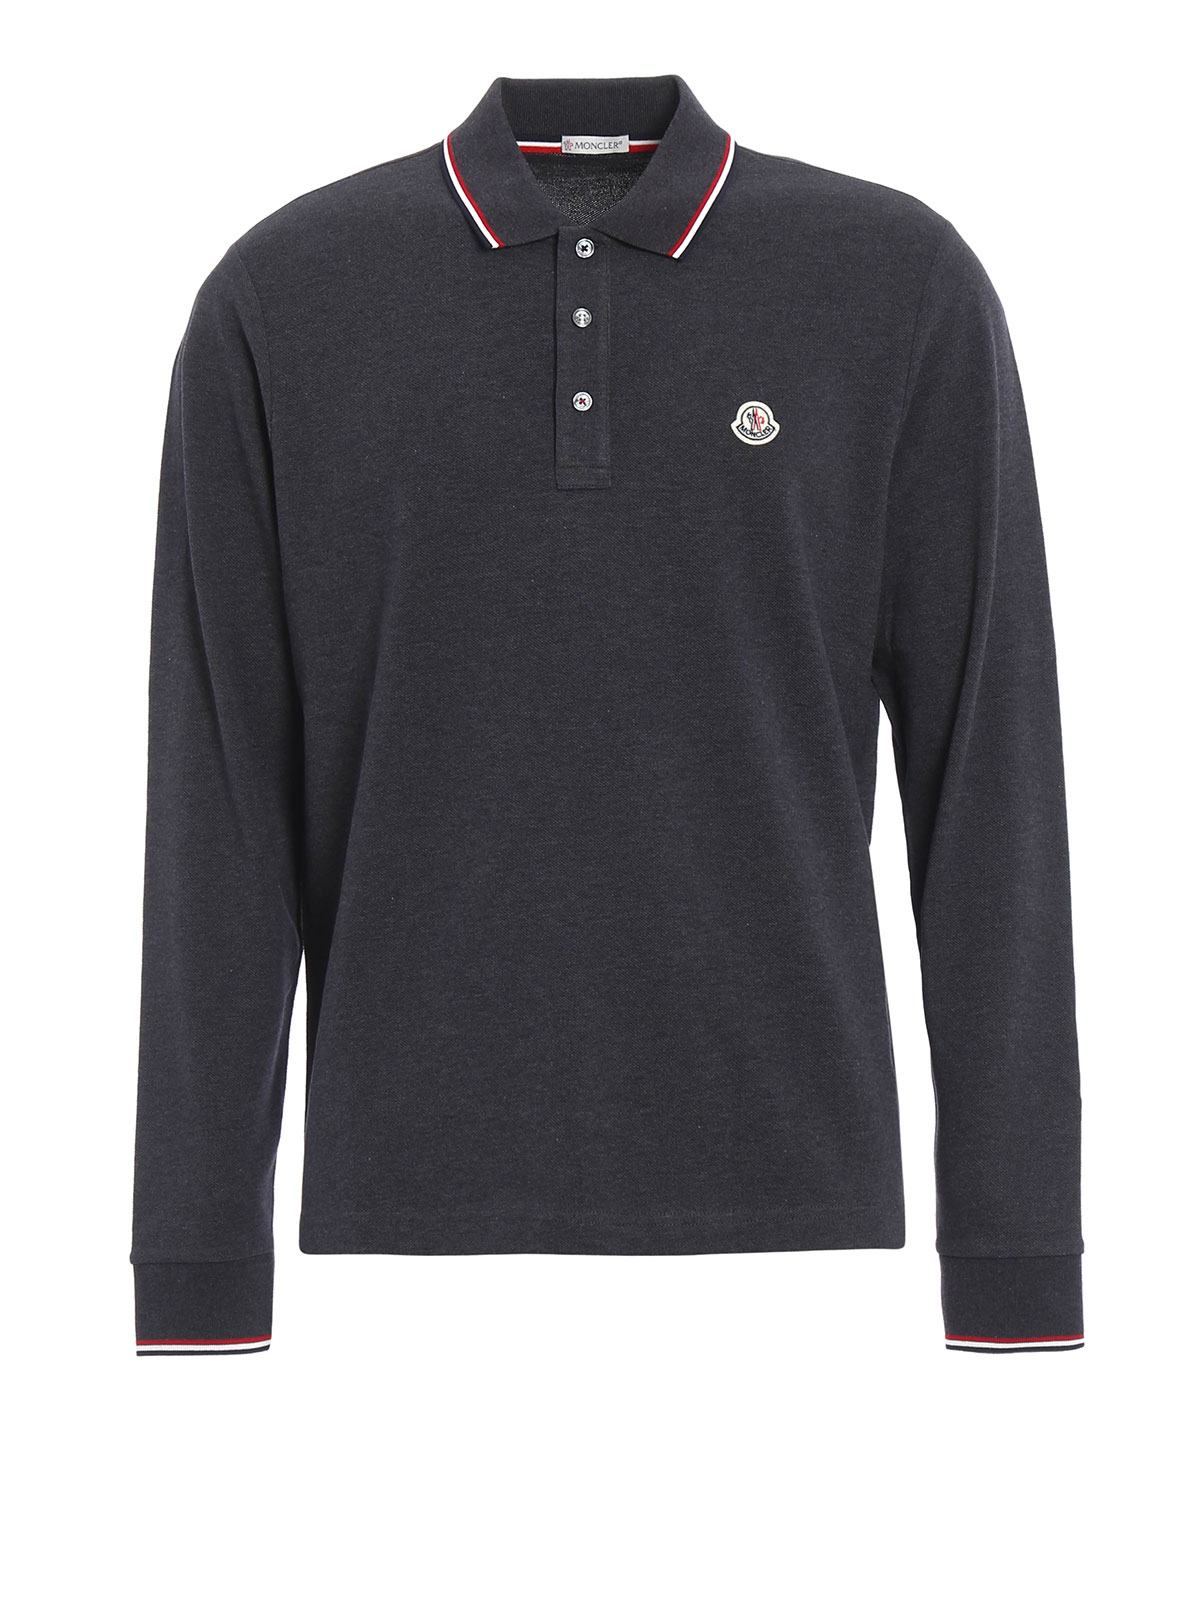 long sleeved cotton polo shirt by moncler polo shirts ikrix. Black Bedroom Furniture Sets. Home Design Ideas